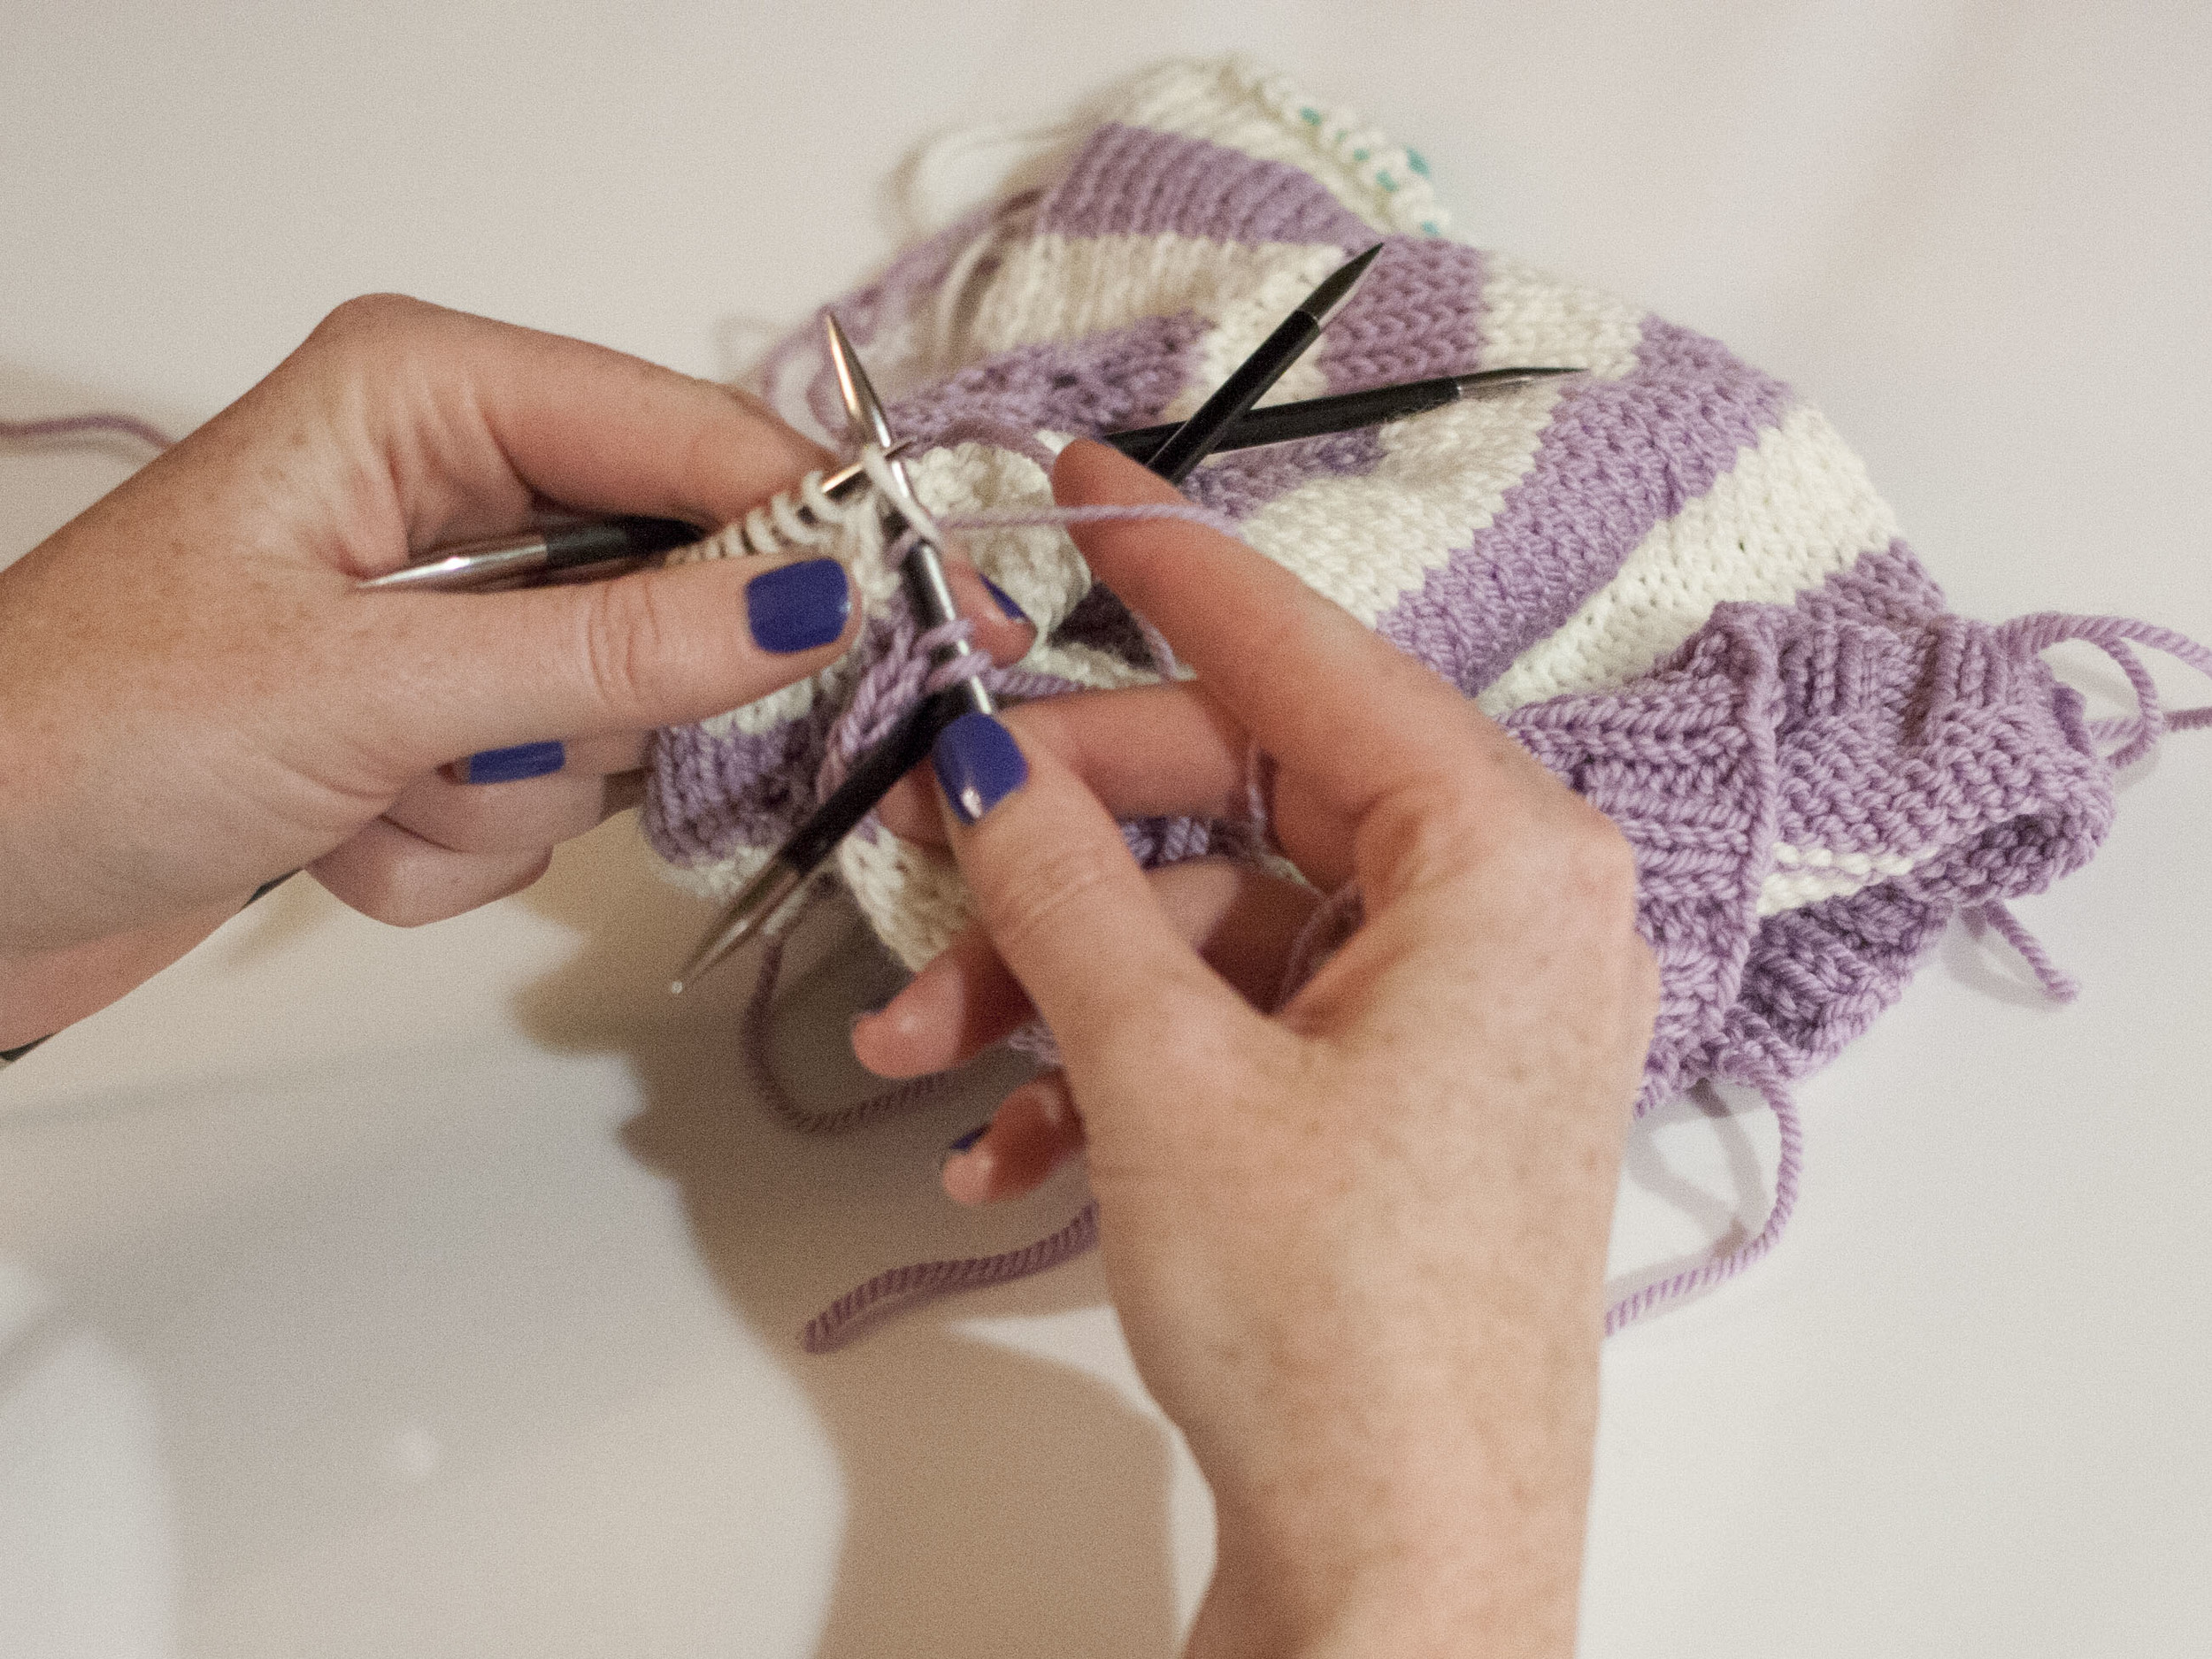 Continue knitting on double-points